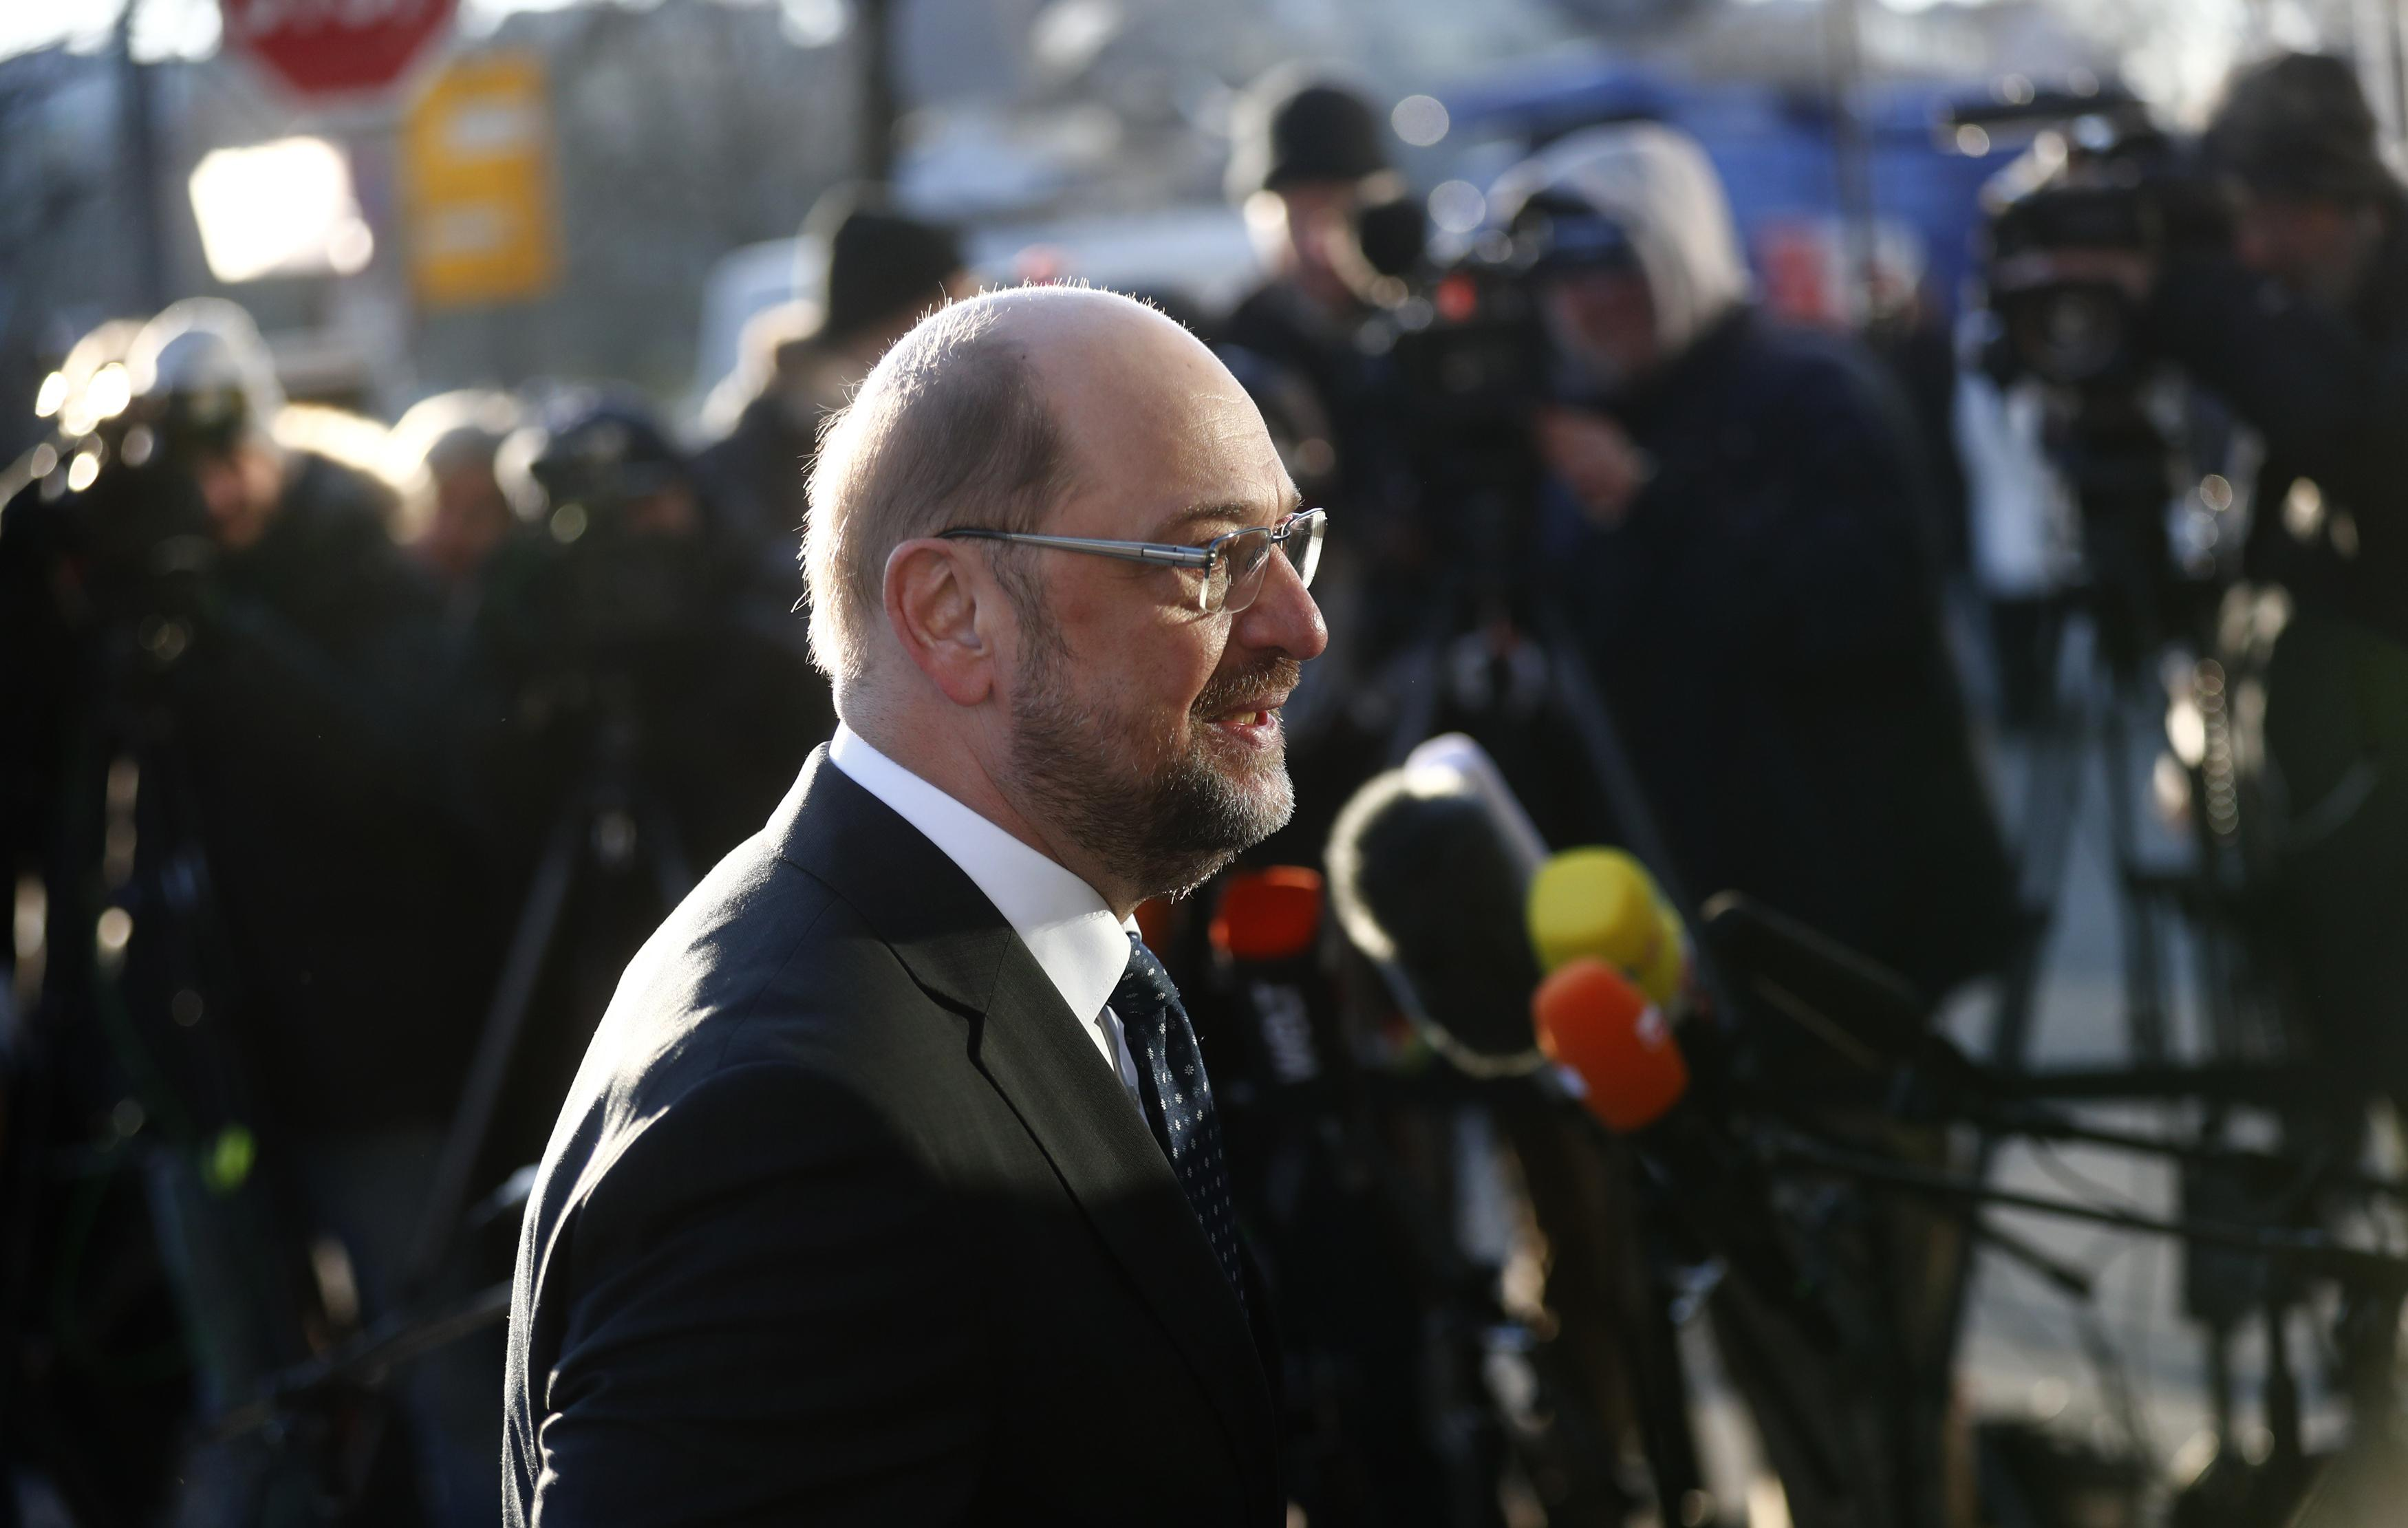 Social Democratic Party (SPD) leader Martin Schulz arrives for coalition talks at the Christian Democratic Union (CDU) headquarters in Berlin, Germany, February 6, 2018. Hannibal Hanschke